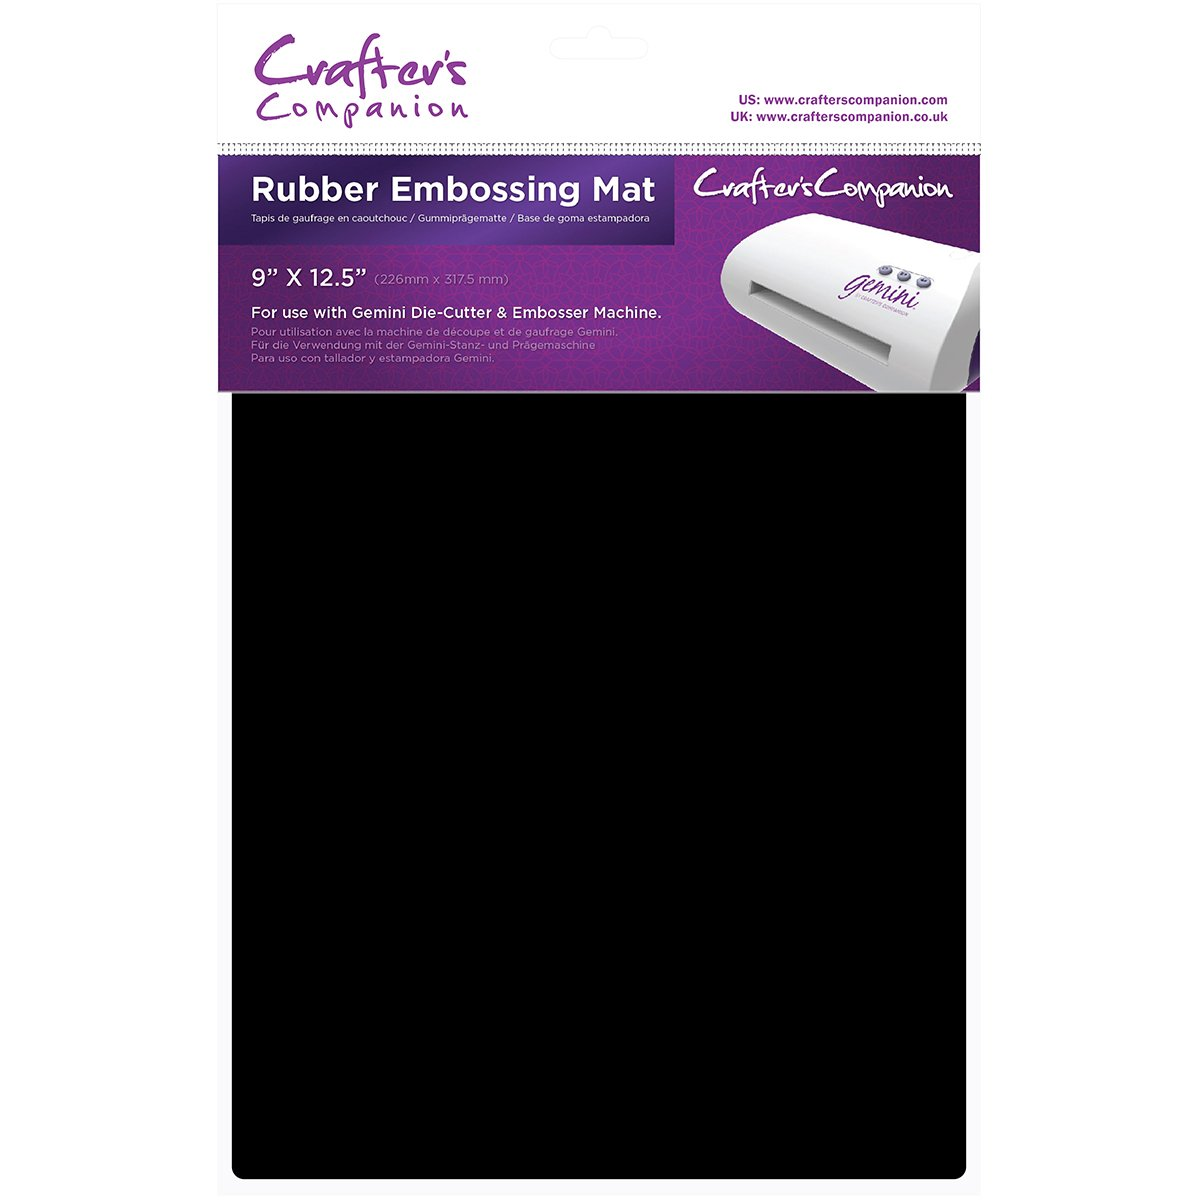 Crafters Companion Gemrubm Gemini Rubber Embossing Mat 9 X 12.5 Inches (6 Pack)